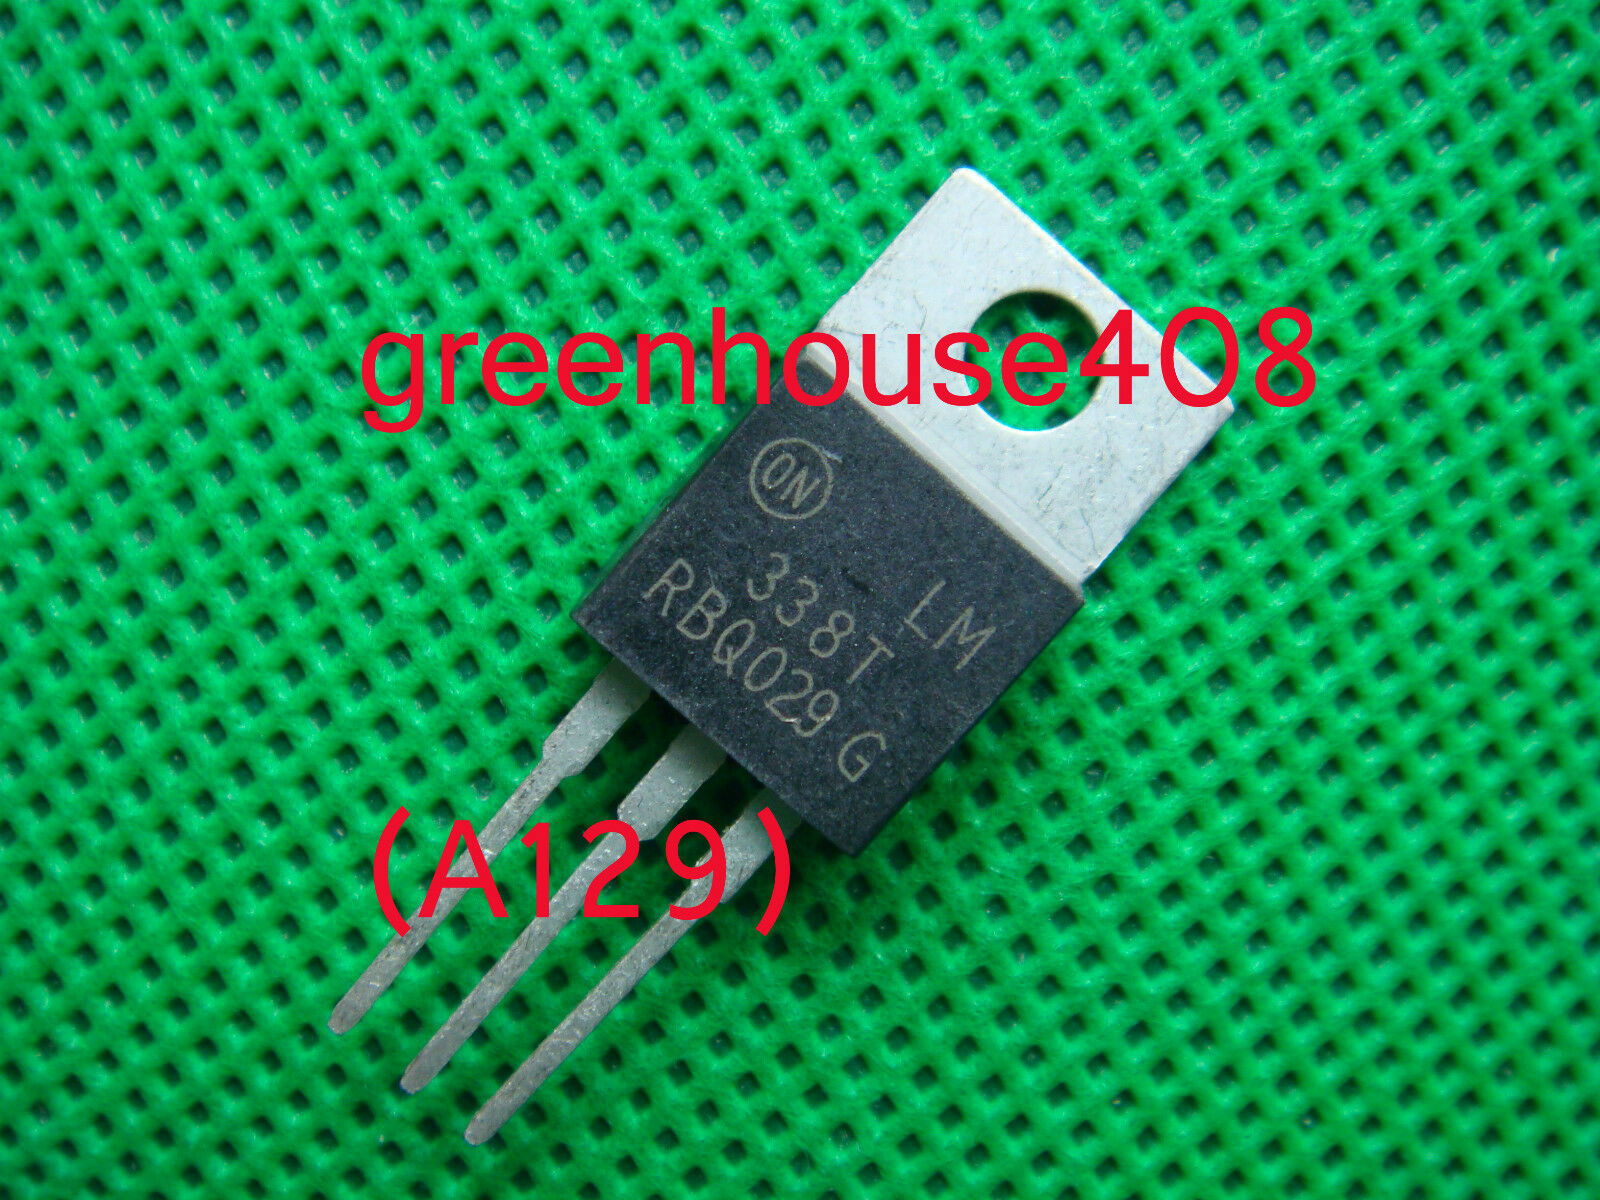 50 Pcs Lm338t Lm338 Voltage Regulator Adjustable 12v To 32v 5a Ns 3a Using Lm350 Electronic Circuits And 1 Of 1free Shipping